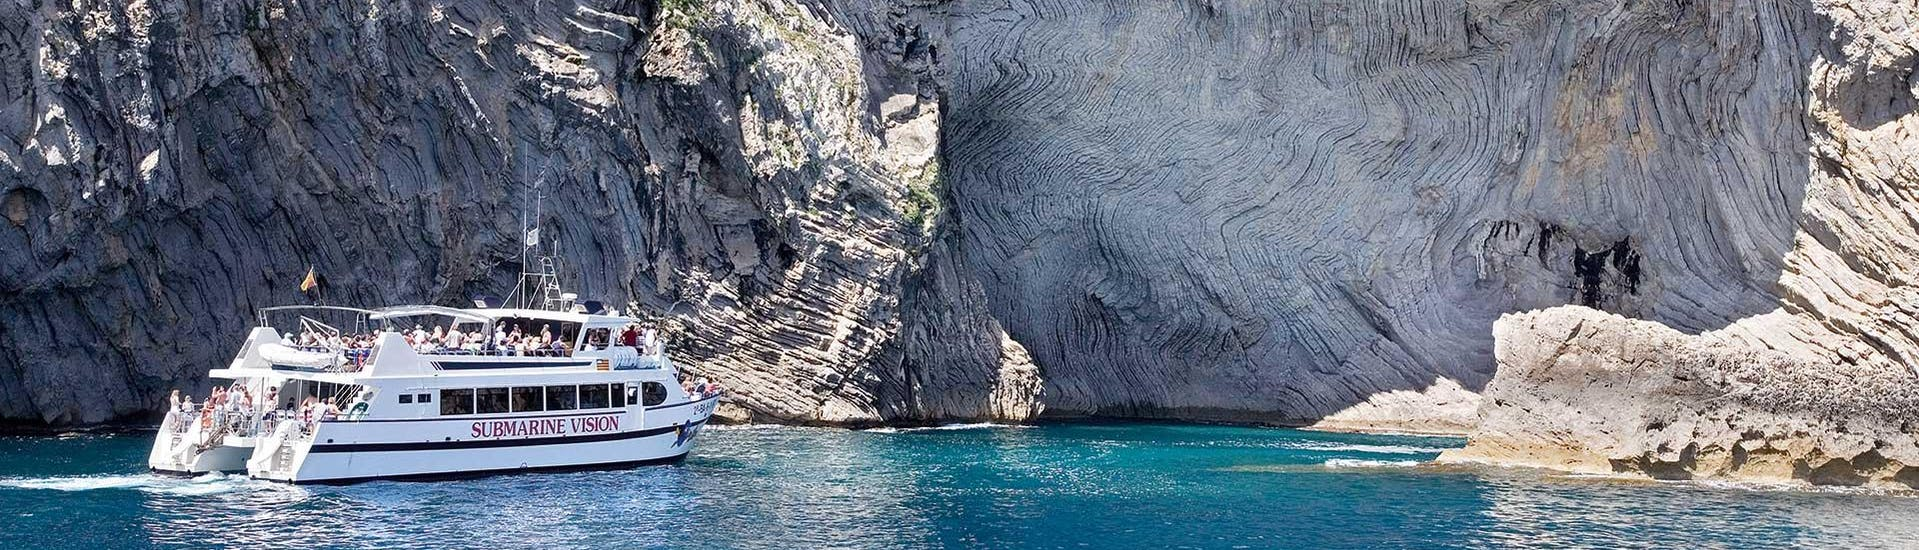 Boat Trip to Formentor Beach with Alcúdia Sea Trips.